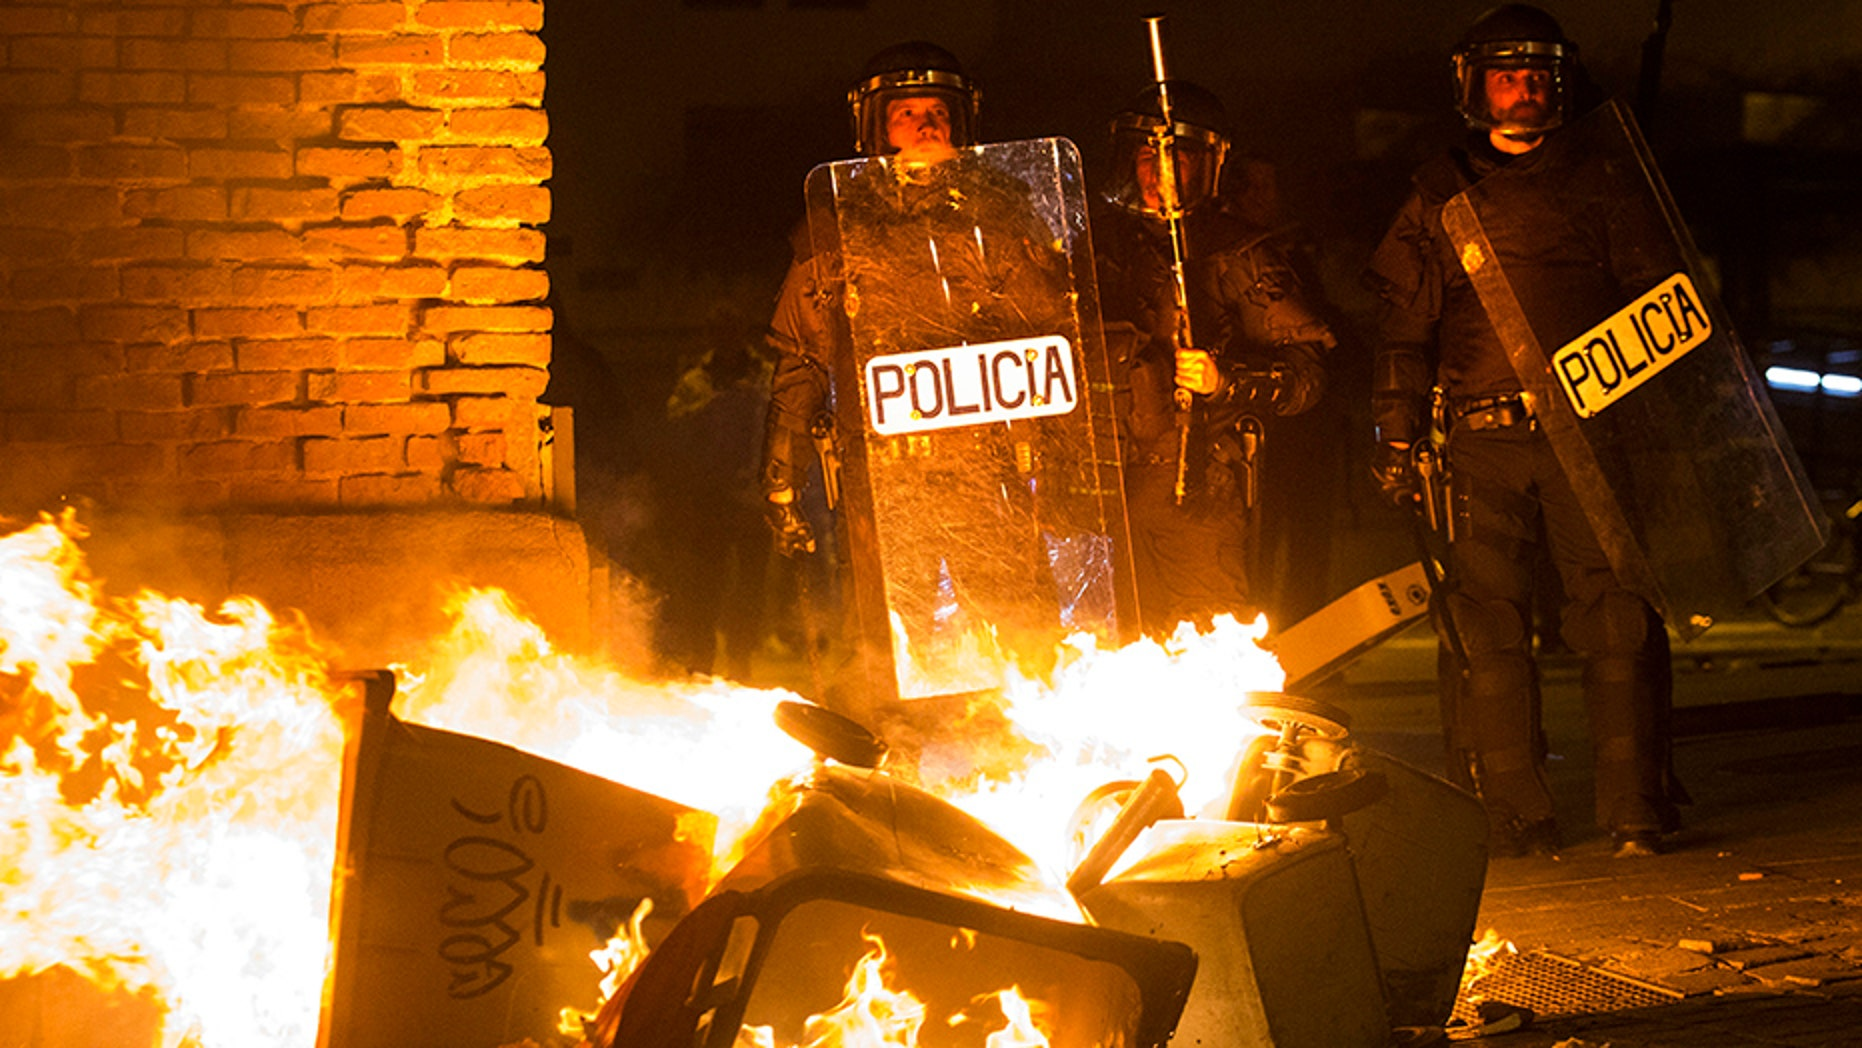 Street clashes erupted Thursday night in central Madrid after the death of a 35-year-old African vendor.